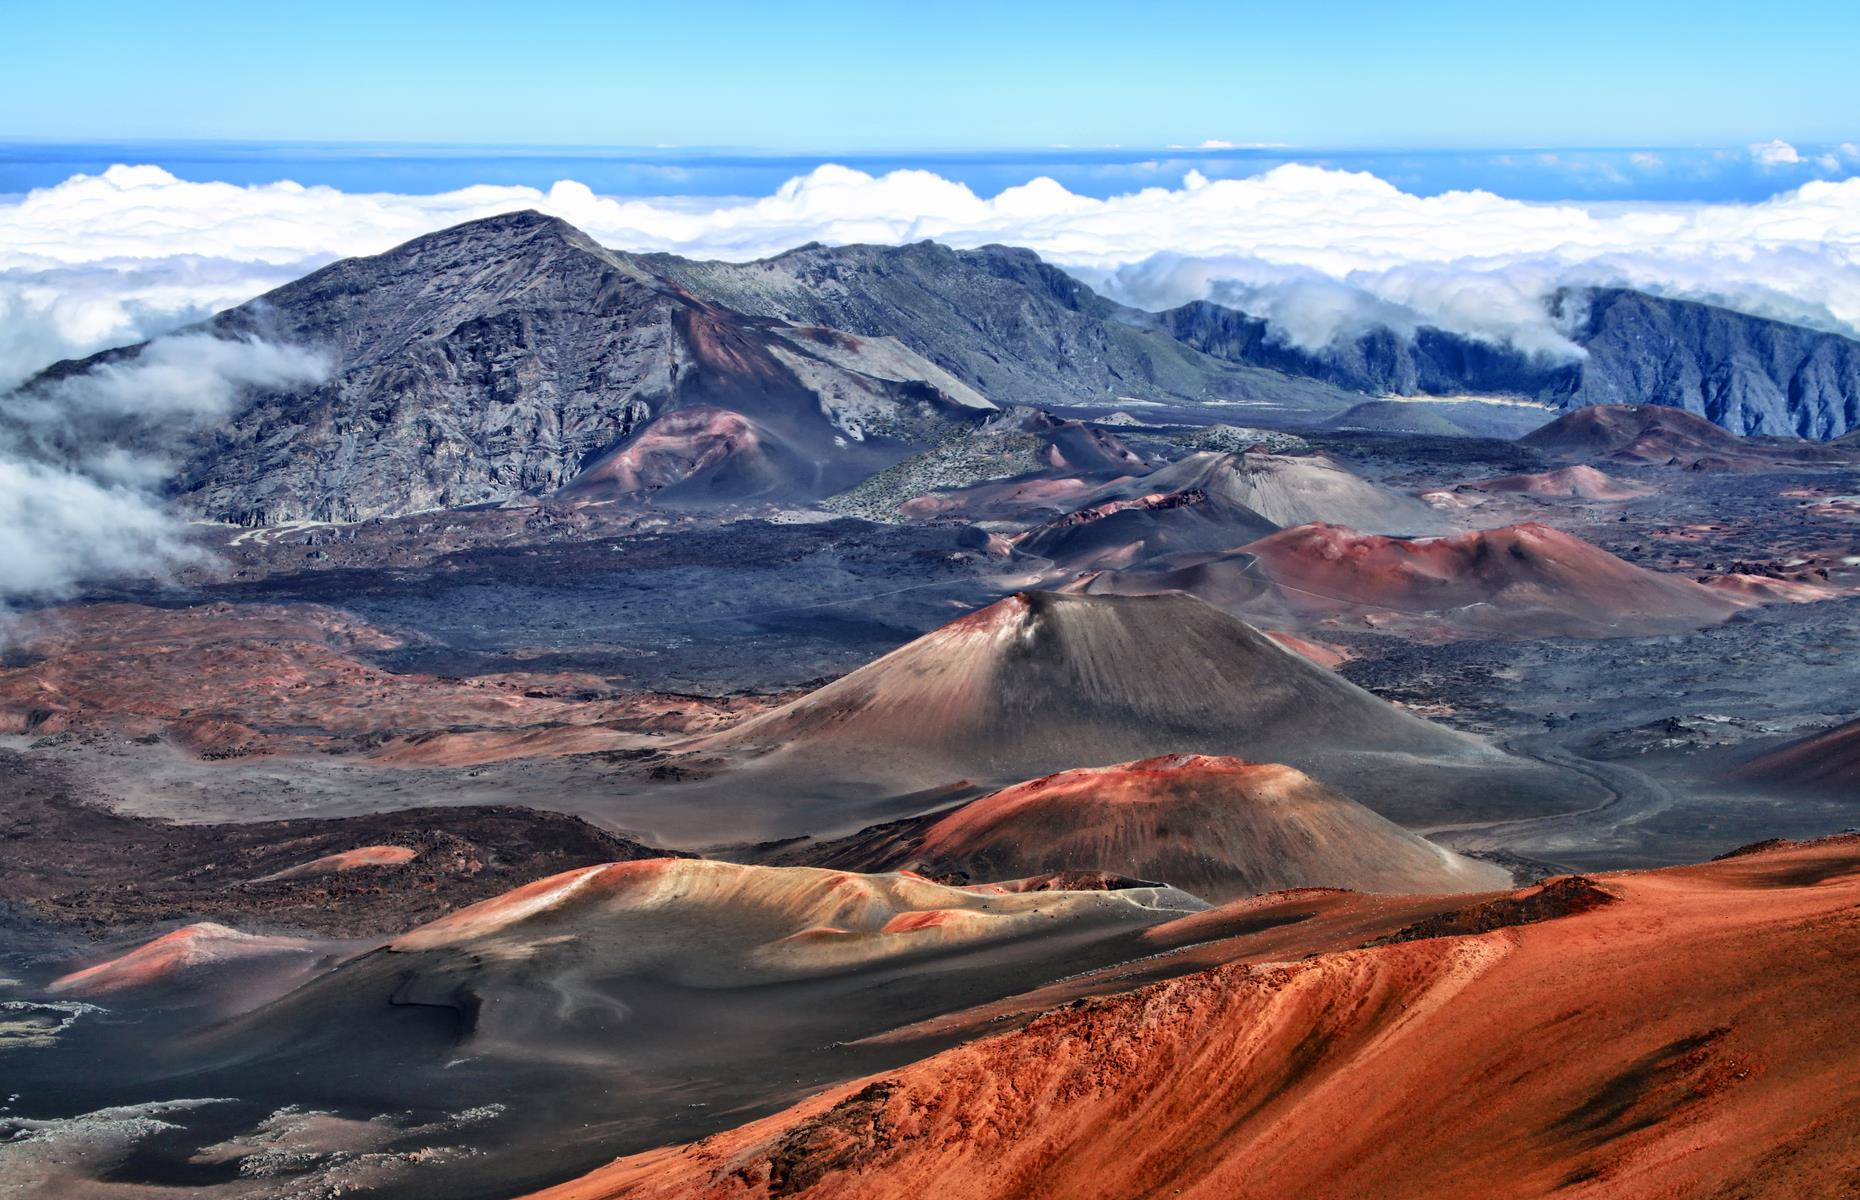 "Slide 21 of 100: Protecting Haleakalā, a dormant volcano that rises to 10,023 feet (3,055m) above sea level, this stunning national park is known as the ""House of the Sun"". Its land has been inhabited by native Hawaiians for more than a millennia and there are spots sacred to these people spread throughout the park. The expanse, which comprises great barren, rocky swathes and rich shrublands, is also home to species including the endangered Hawaiian goose (the nēnē), Hawaii's state bird."